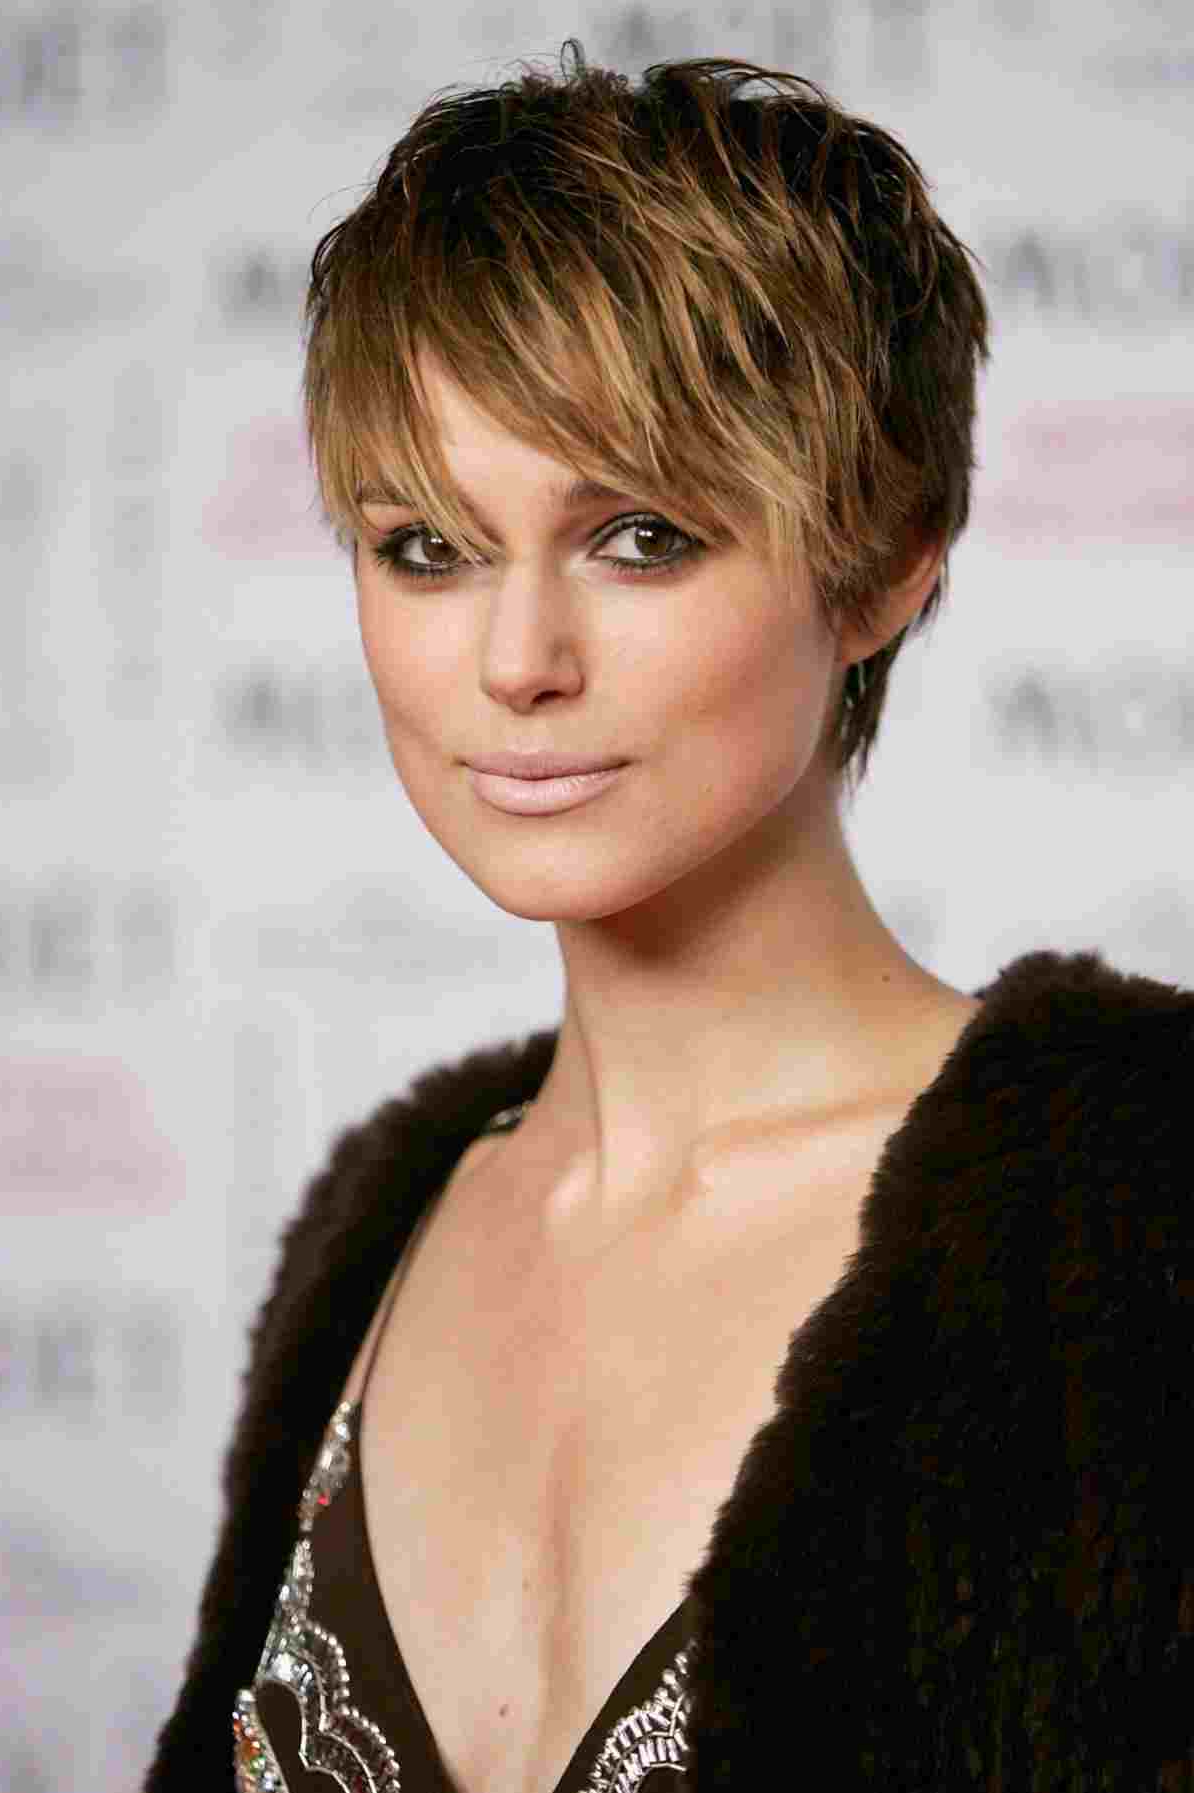 And Square Face S Over Style Women U Manrhexsecratuscom Awesome In Short Hairstyles For Square Face (Gallery 15 of 25)